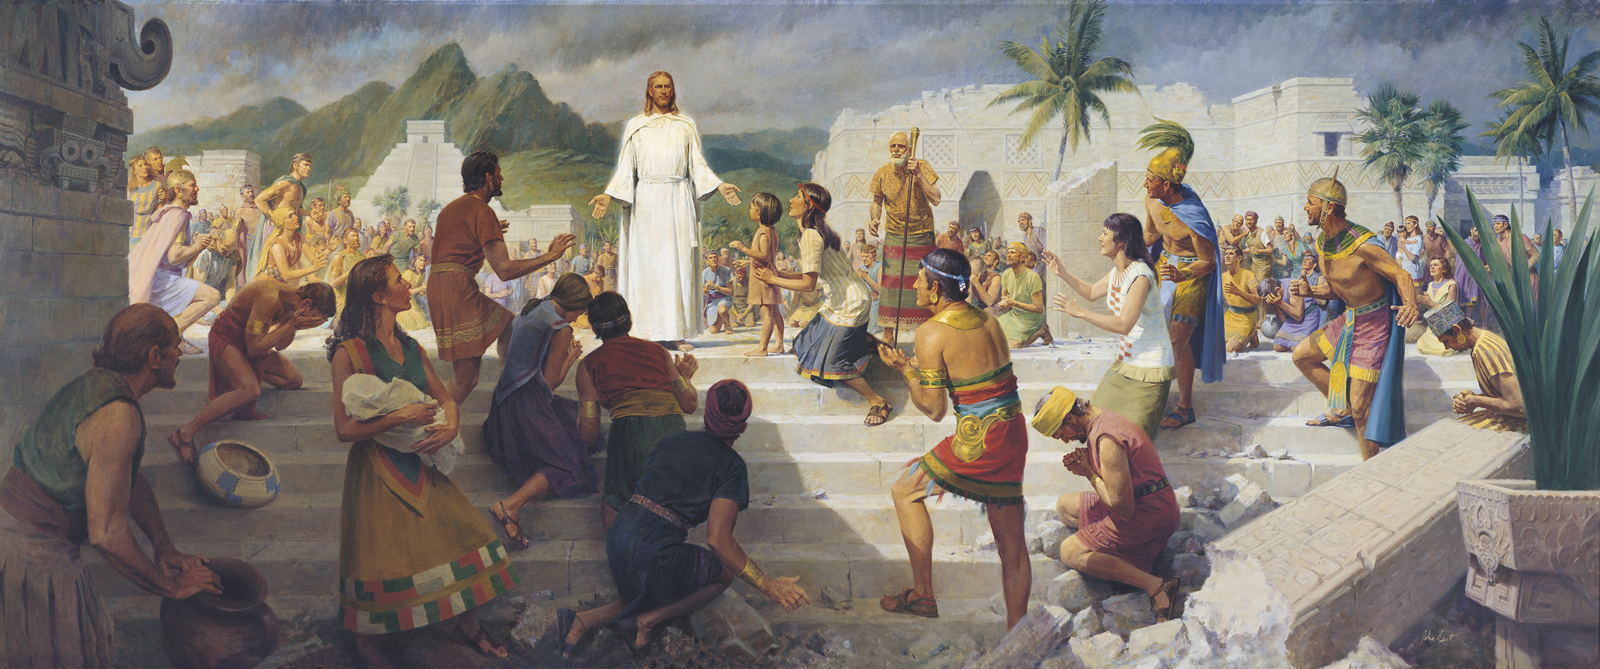 Image result for Jesus Christ lds atonement